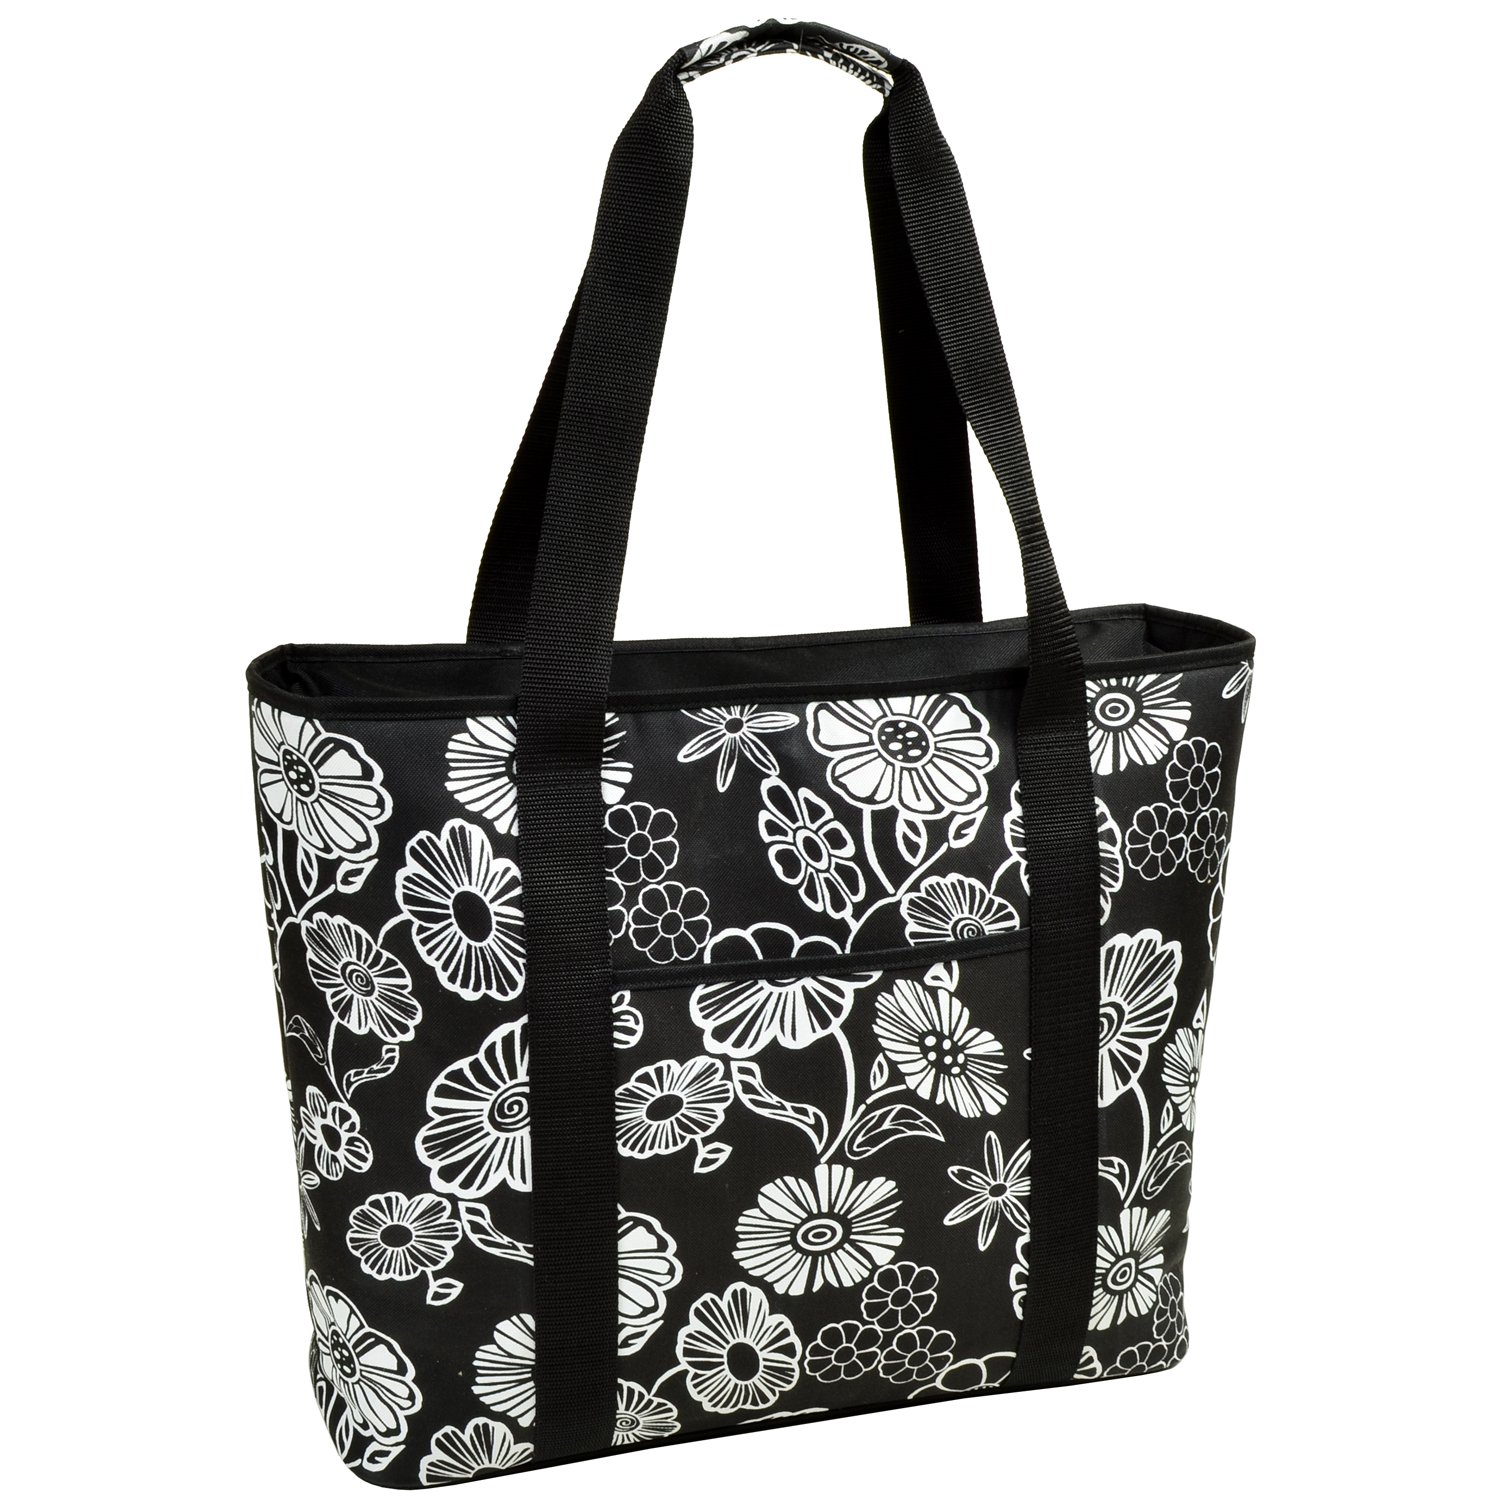 Picnic at Ascot Night Bloom Extra Large Insulated Tote (421-NB)